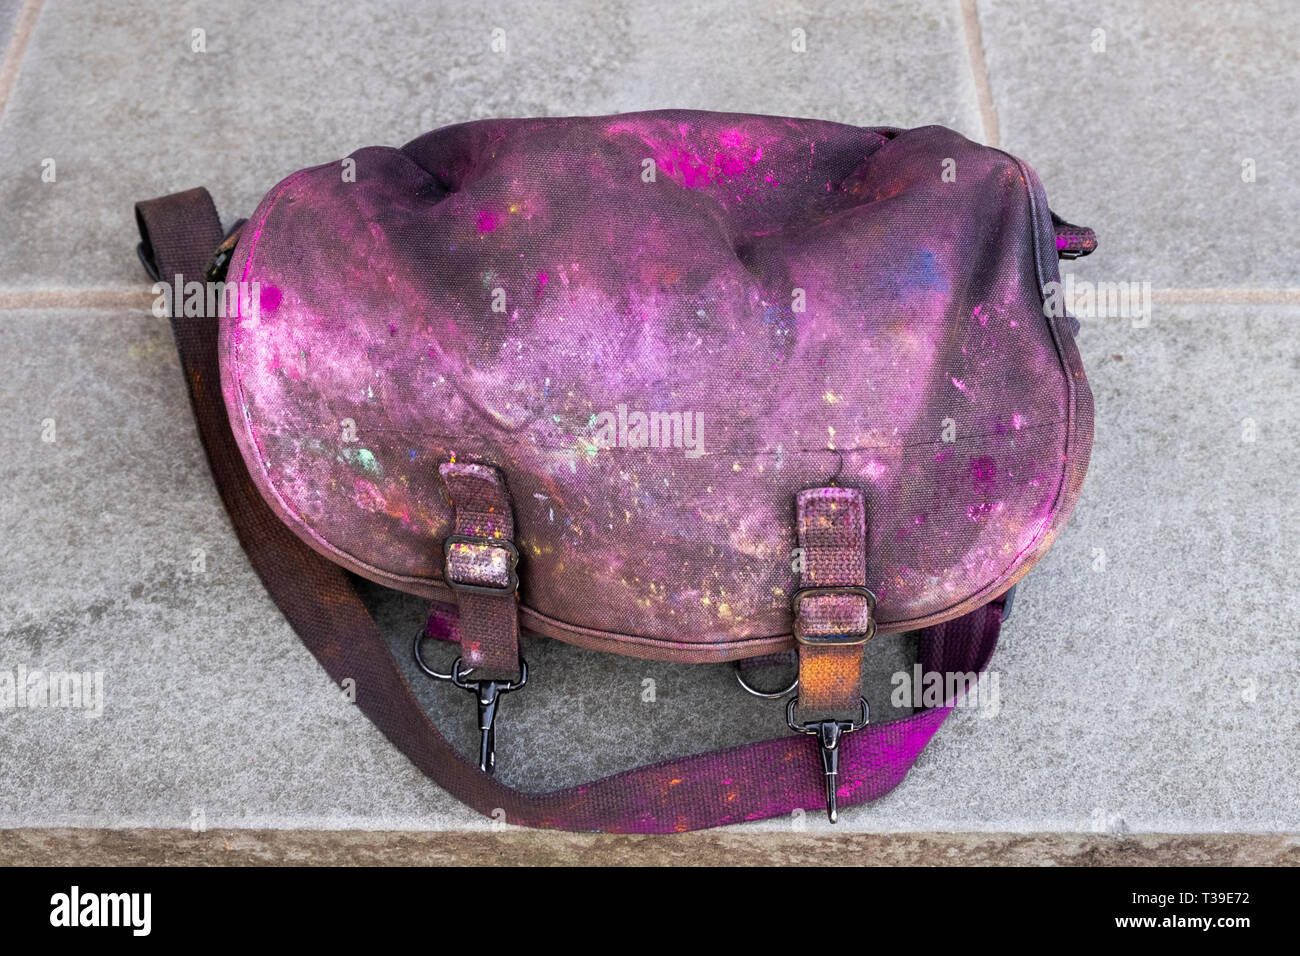 A Domke camera bag soiled by the colored powder thrown at the 2019 Holi Parade in Richmond Hills, Queens, New York City. - Stock Image